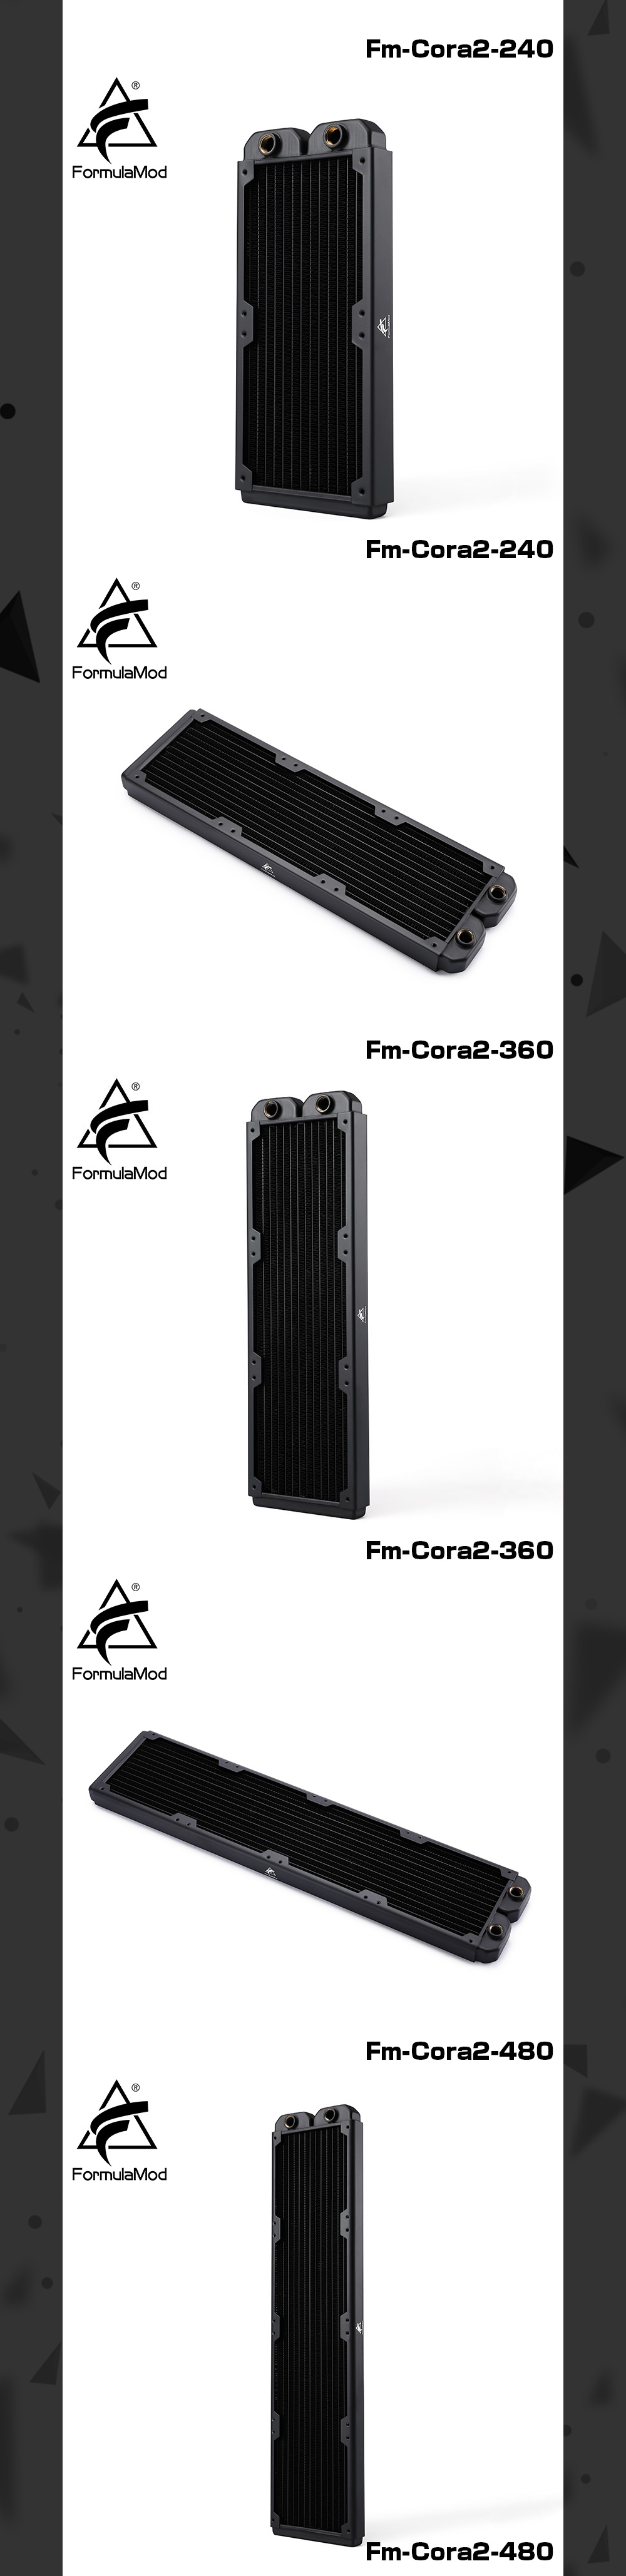 FormulaMod Fm-CoRa2 28mm Thickness Copper Radiator 120/240/360/480 Black Suitable For 120 Fans